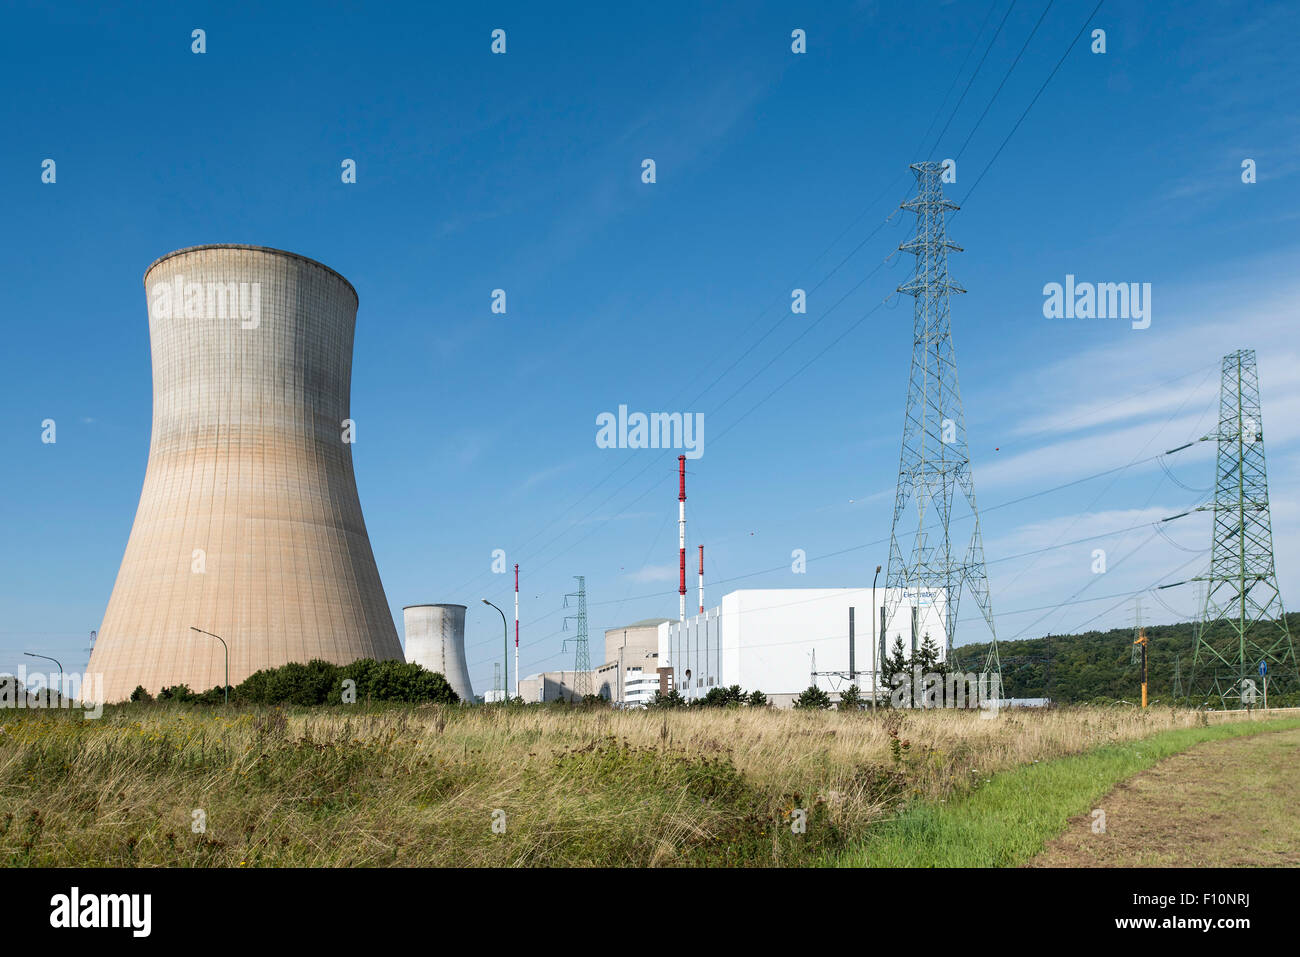 Cooling towers of the Tihange Nuclear Power Station at Huy / Hoei, Liège / Luik, Belgium - Stock Image